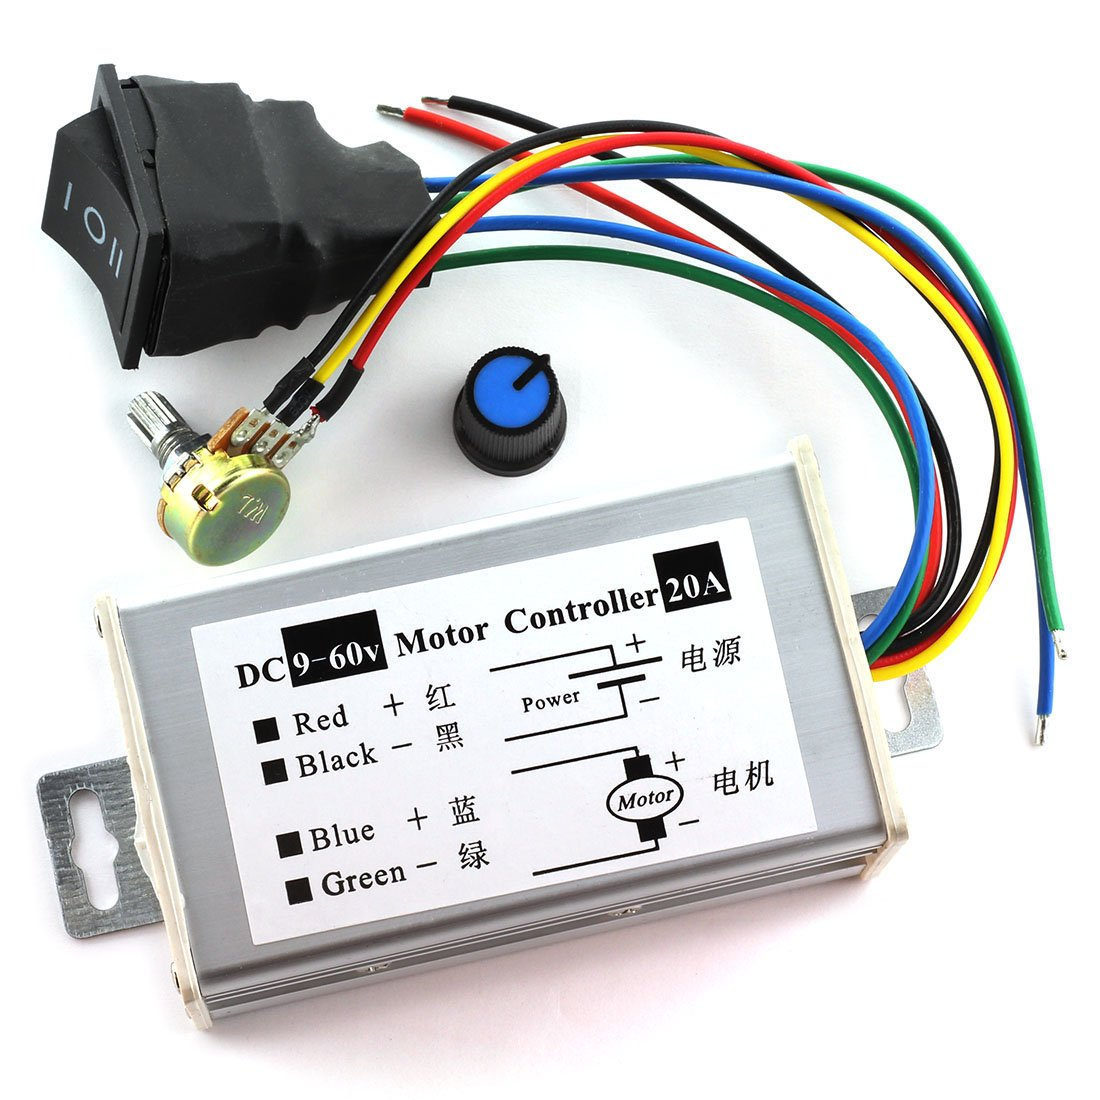 DZS Elec DC Motor Controller 9-60V Forward/Reverse High Power PWM Control Switch Motor Speed Regulator DC 12V 24V 36V 48V 60V 20A 1200W